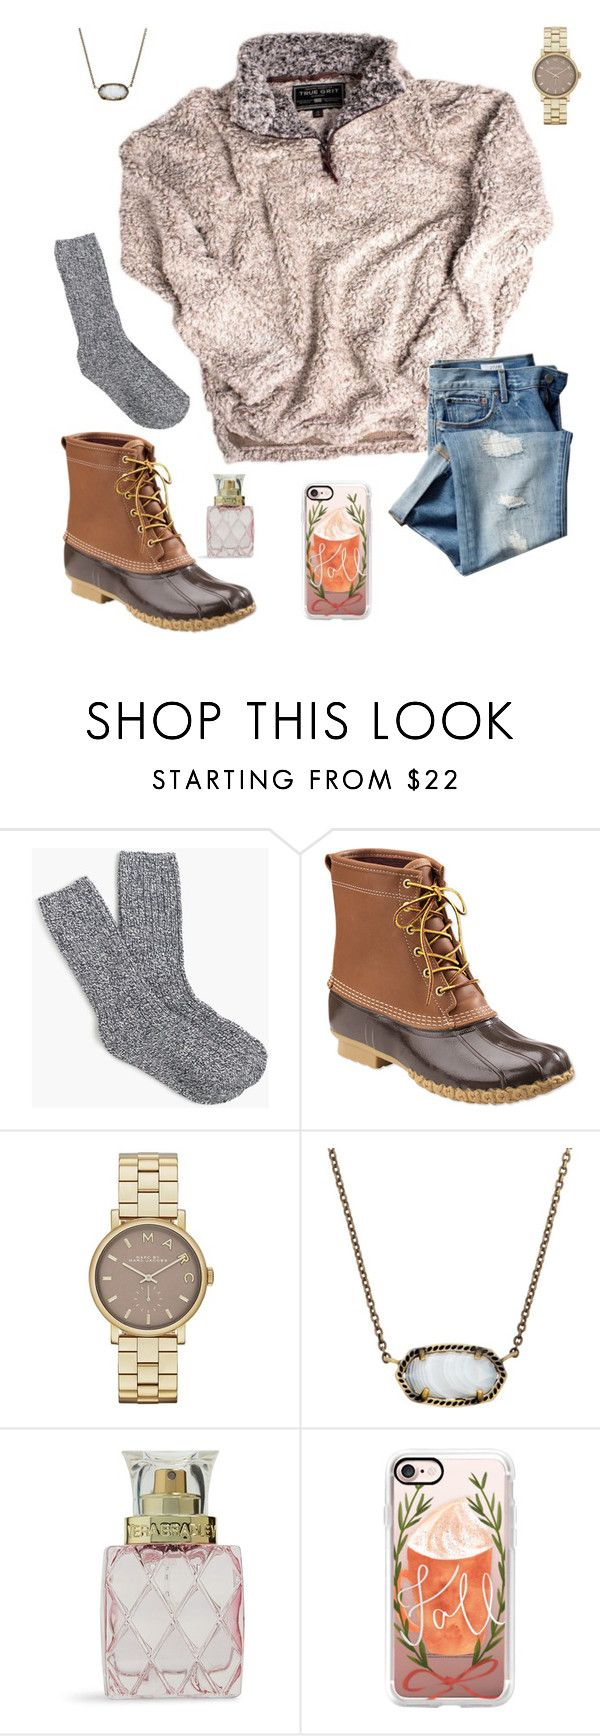 """Someone please get me a True Grit pullover"" by outfitsbyalaina ❤ liked on Polyvore featuring J.Crew, Gap, L.L.Bean, Marc Jacobs, Kendra Scott, Vera Bradley and Casetify"